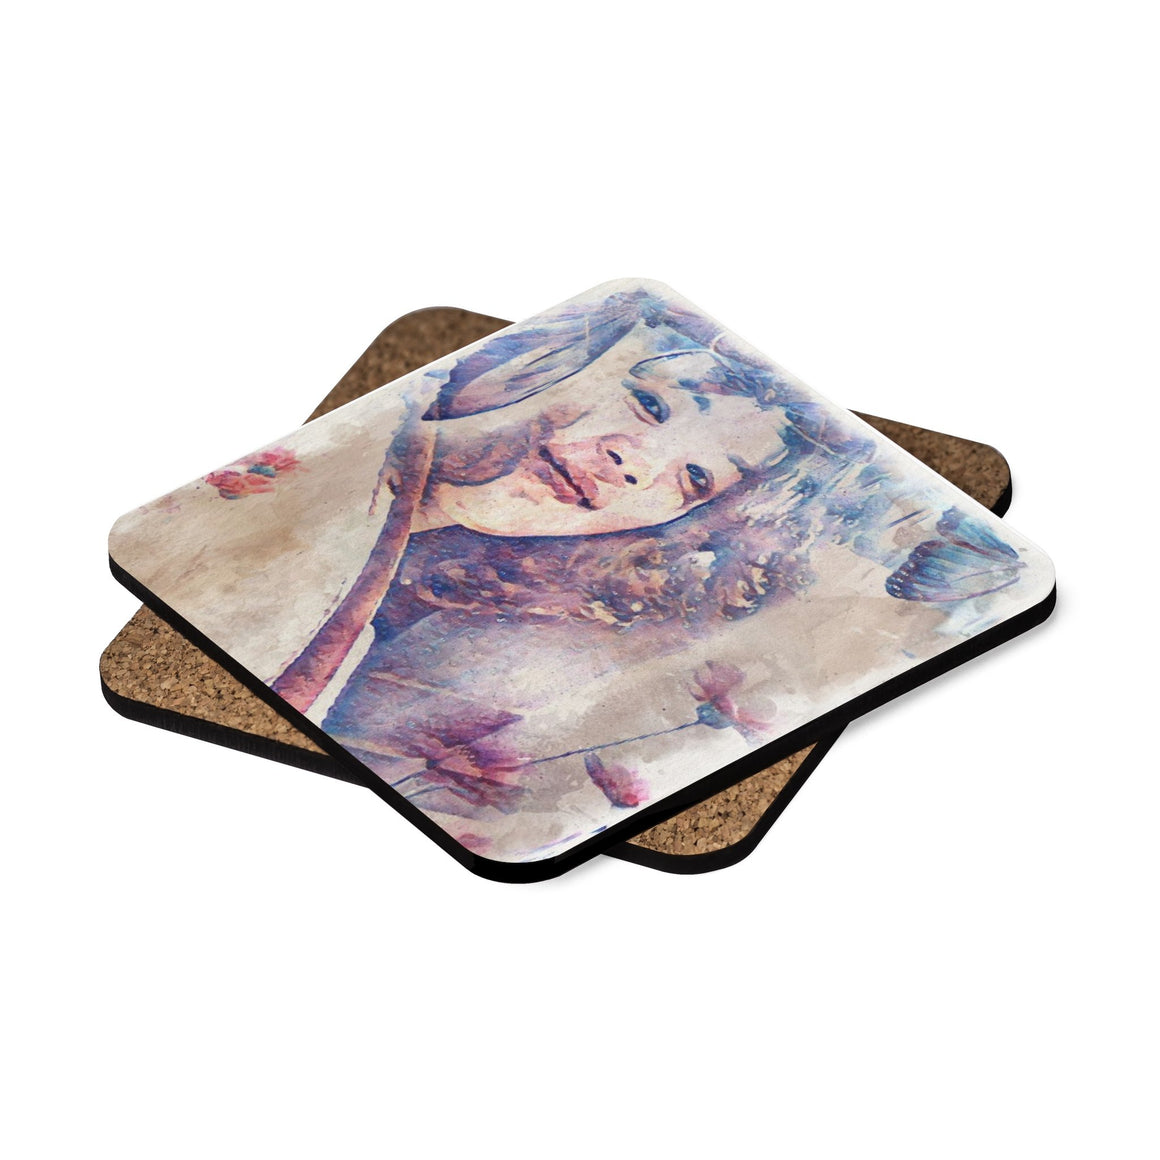 Levi Thang Vintage Face Design V Square Hardboard Coaster Set - 4pcs